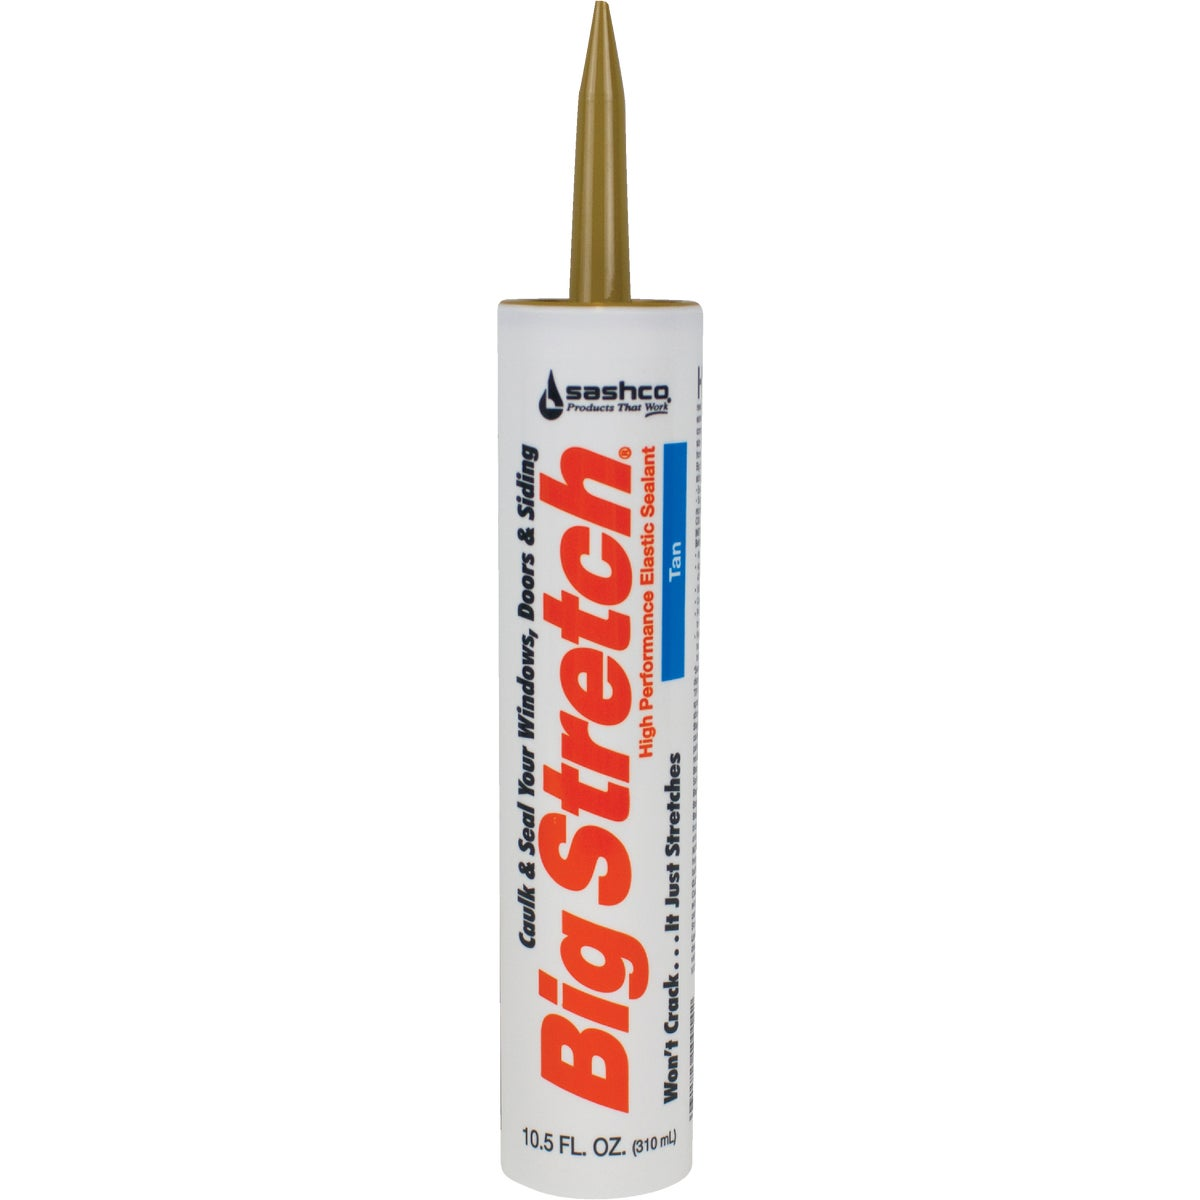 TAN ACRYLIC CAULK - 10014 by Sashco Sealants Inc